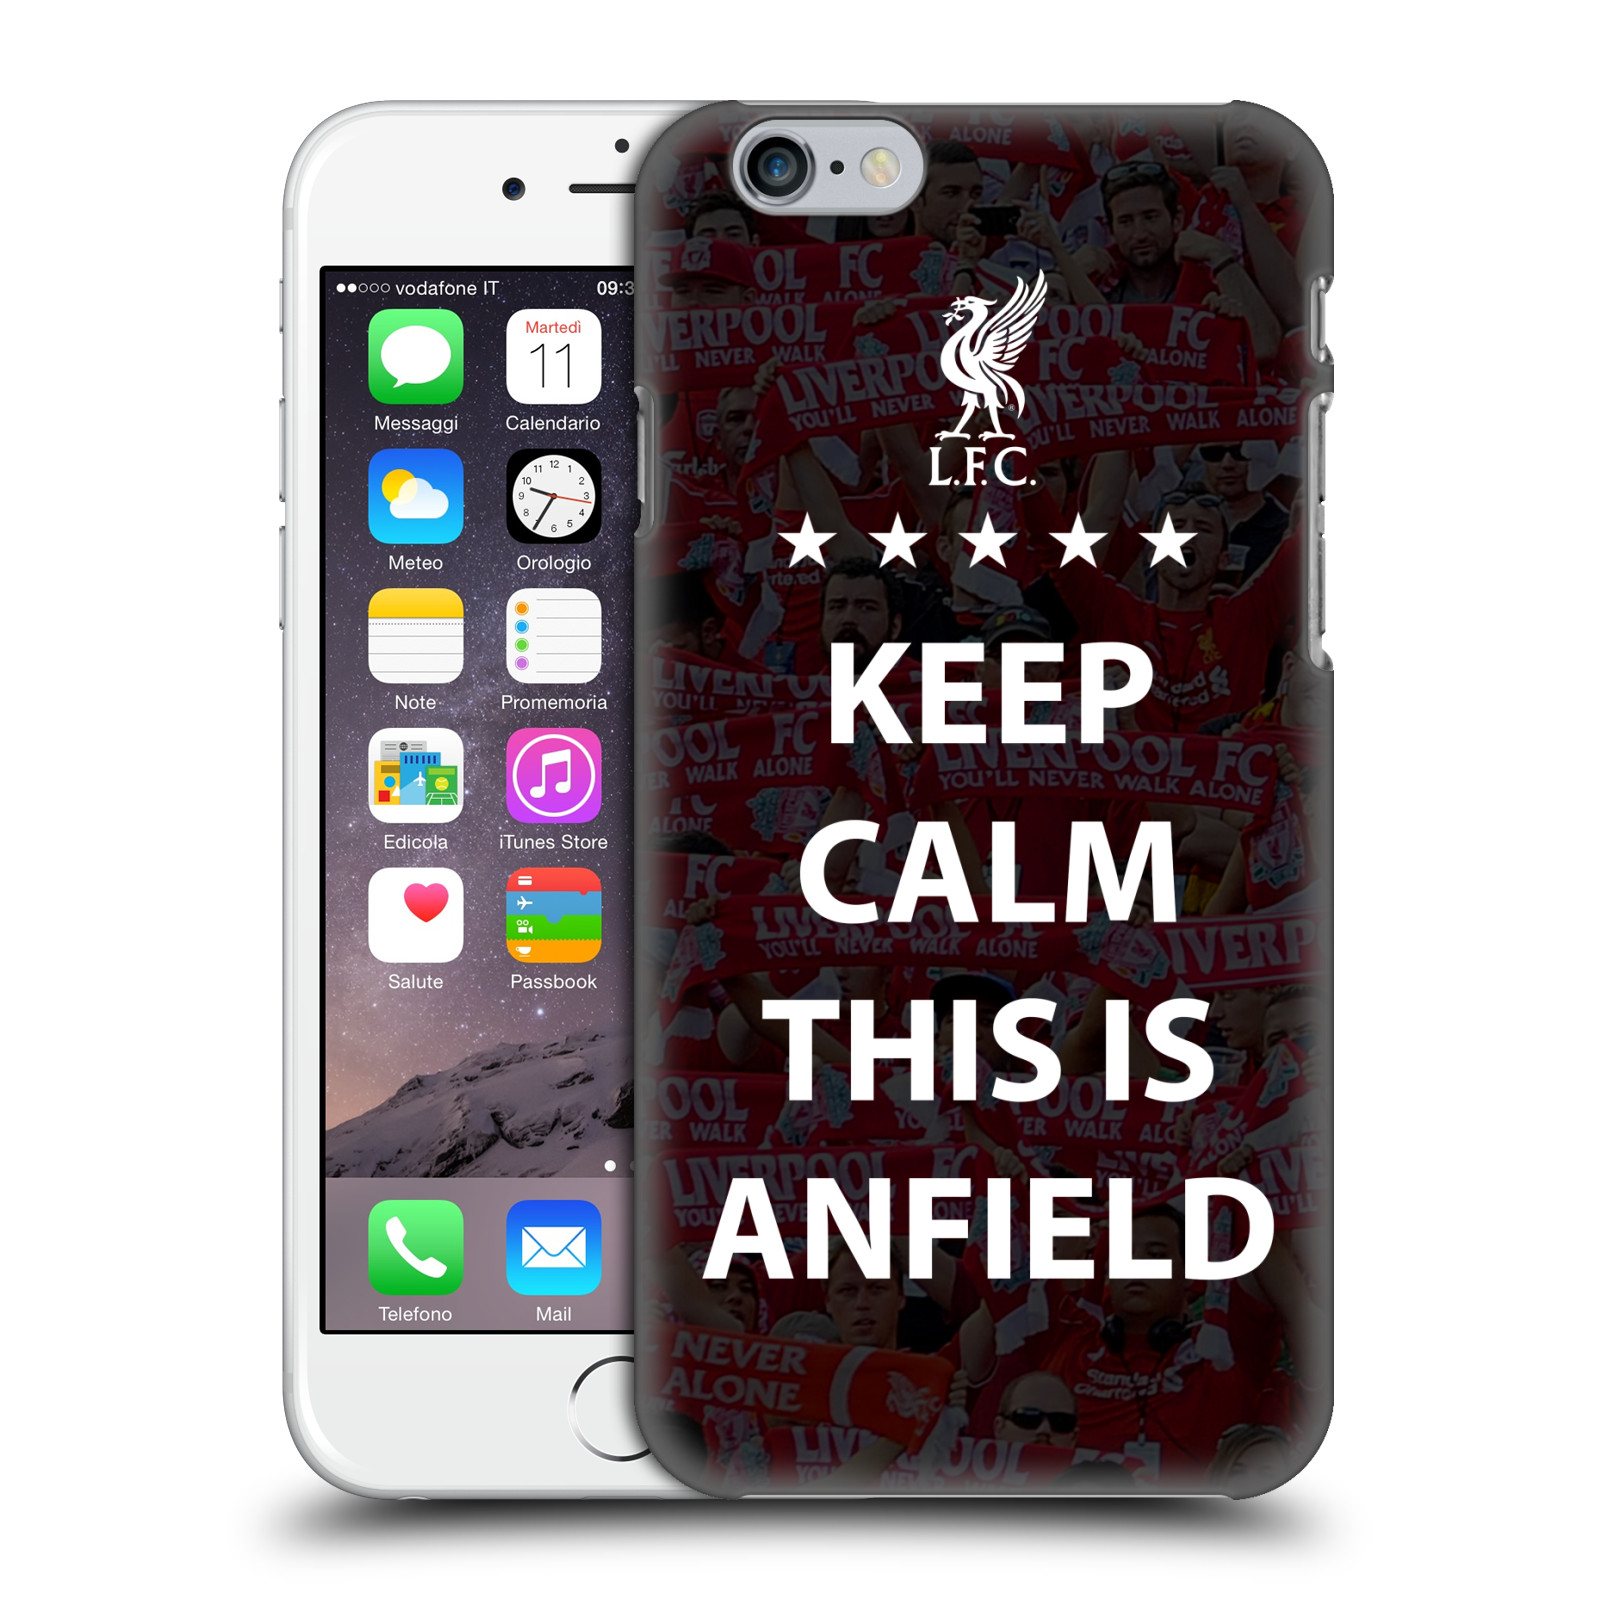 Liverpool FC LFC This Is Anfield-Keep Calm Black